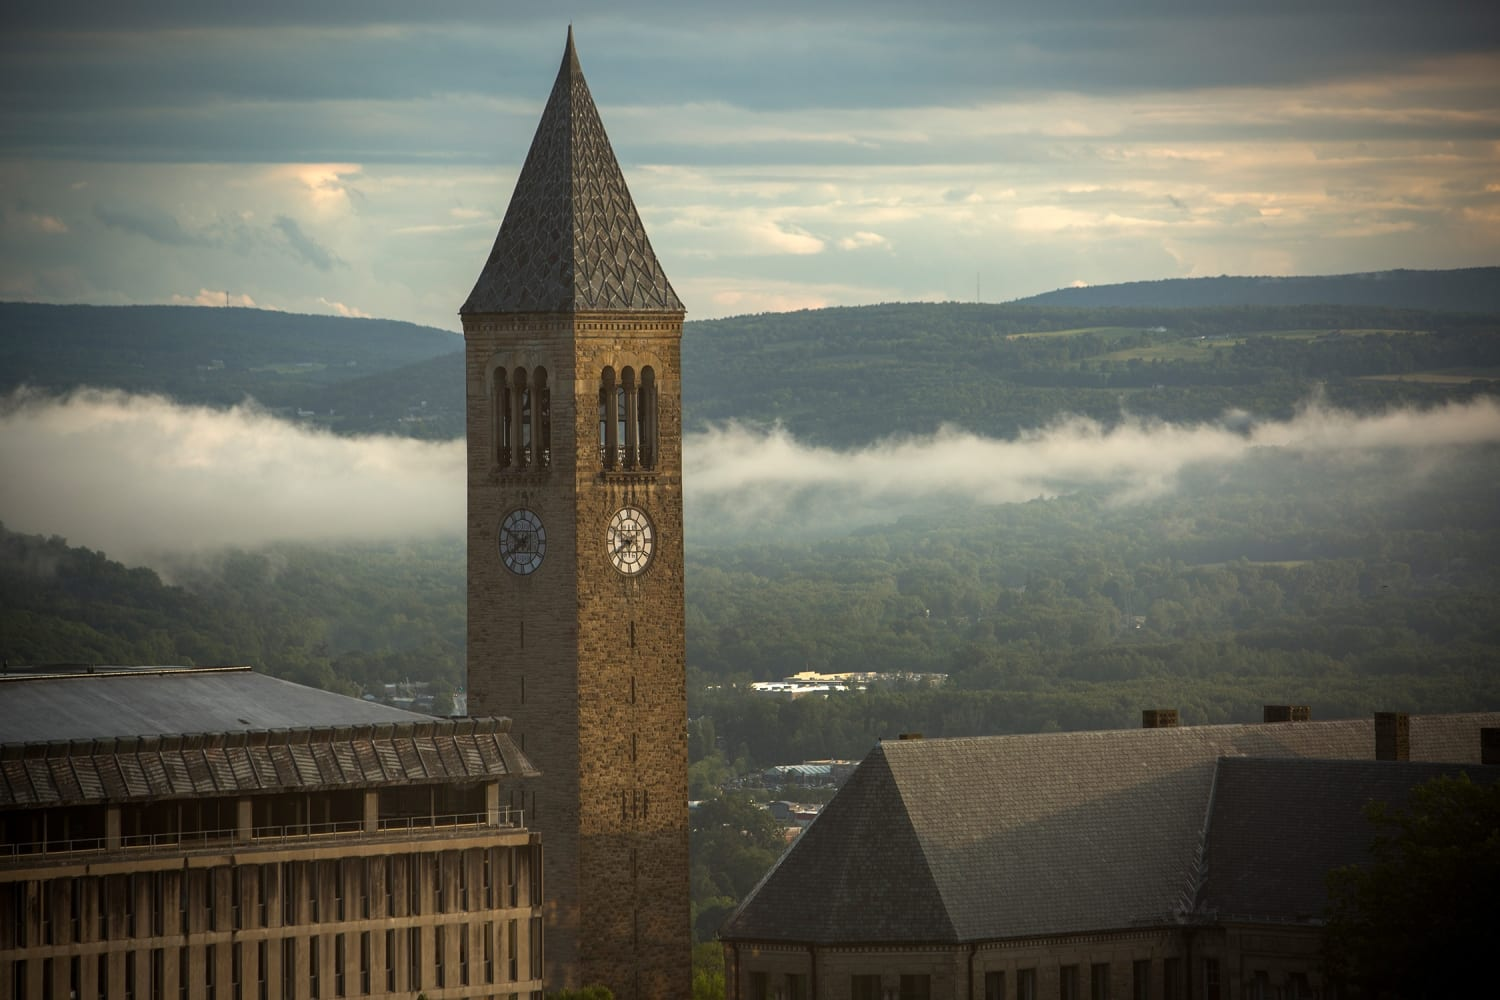 Fog over campus with McGraw Tower in foreground